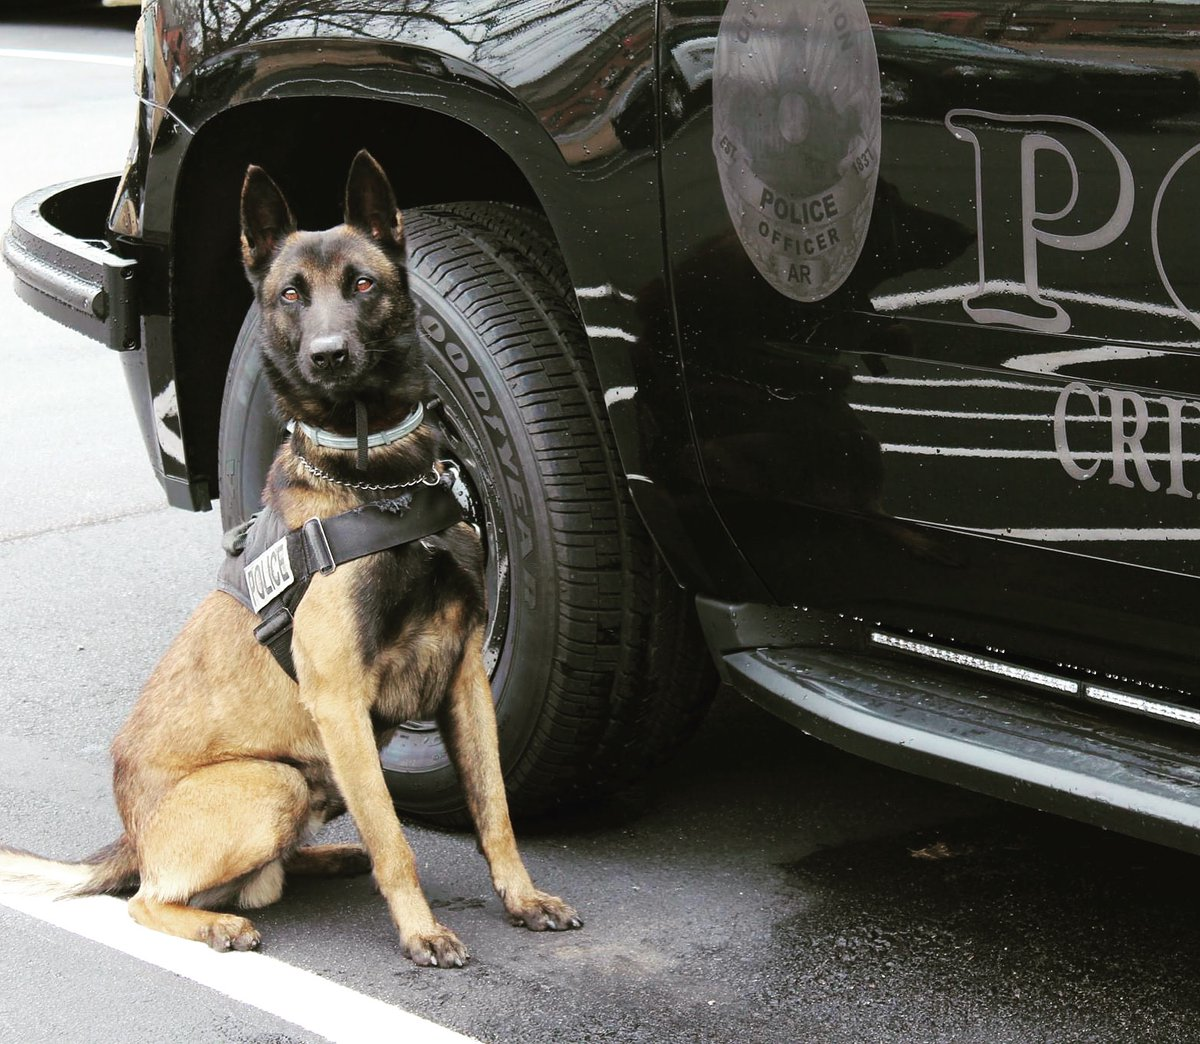 Happy Friday from K-9 Sam and all of us at BNPD!  Everyone have a great day, and as always, call us if you need us. We're here for you!  #BNPD #CommunityFirst #BeTheDifference #BentonProud